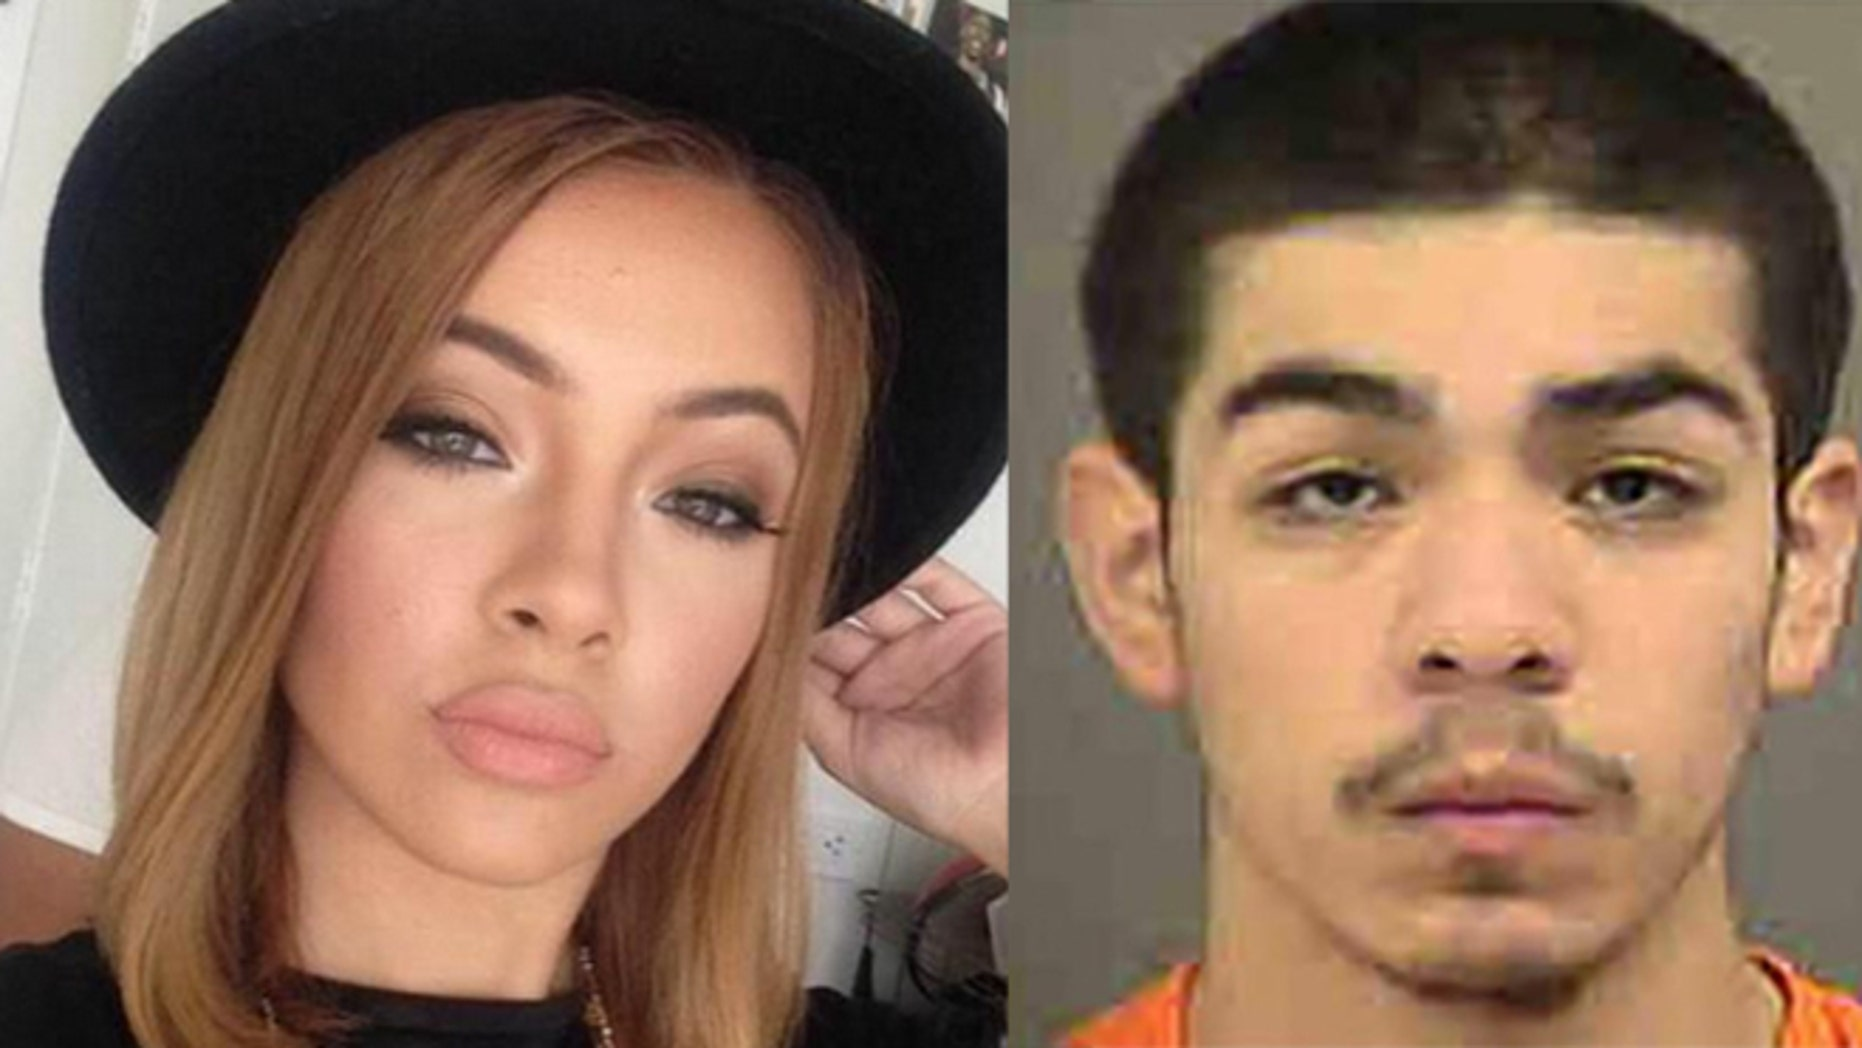 Emmanuel Jesus Rangel-Hernandez (R) is accused of killing model Mirjana Puhar (L), along with two others, on Feb. 24, 2015.